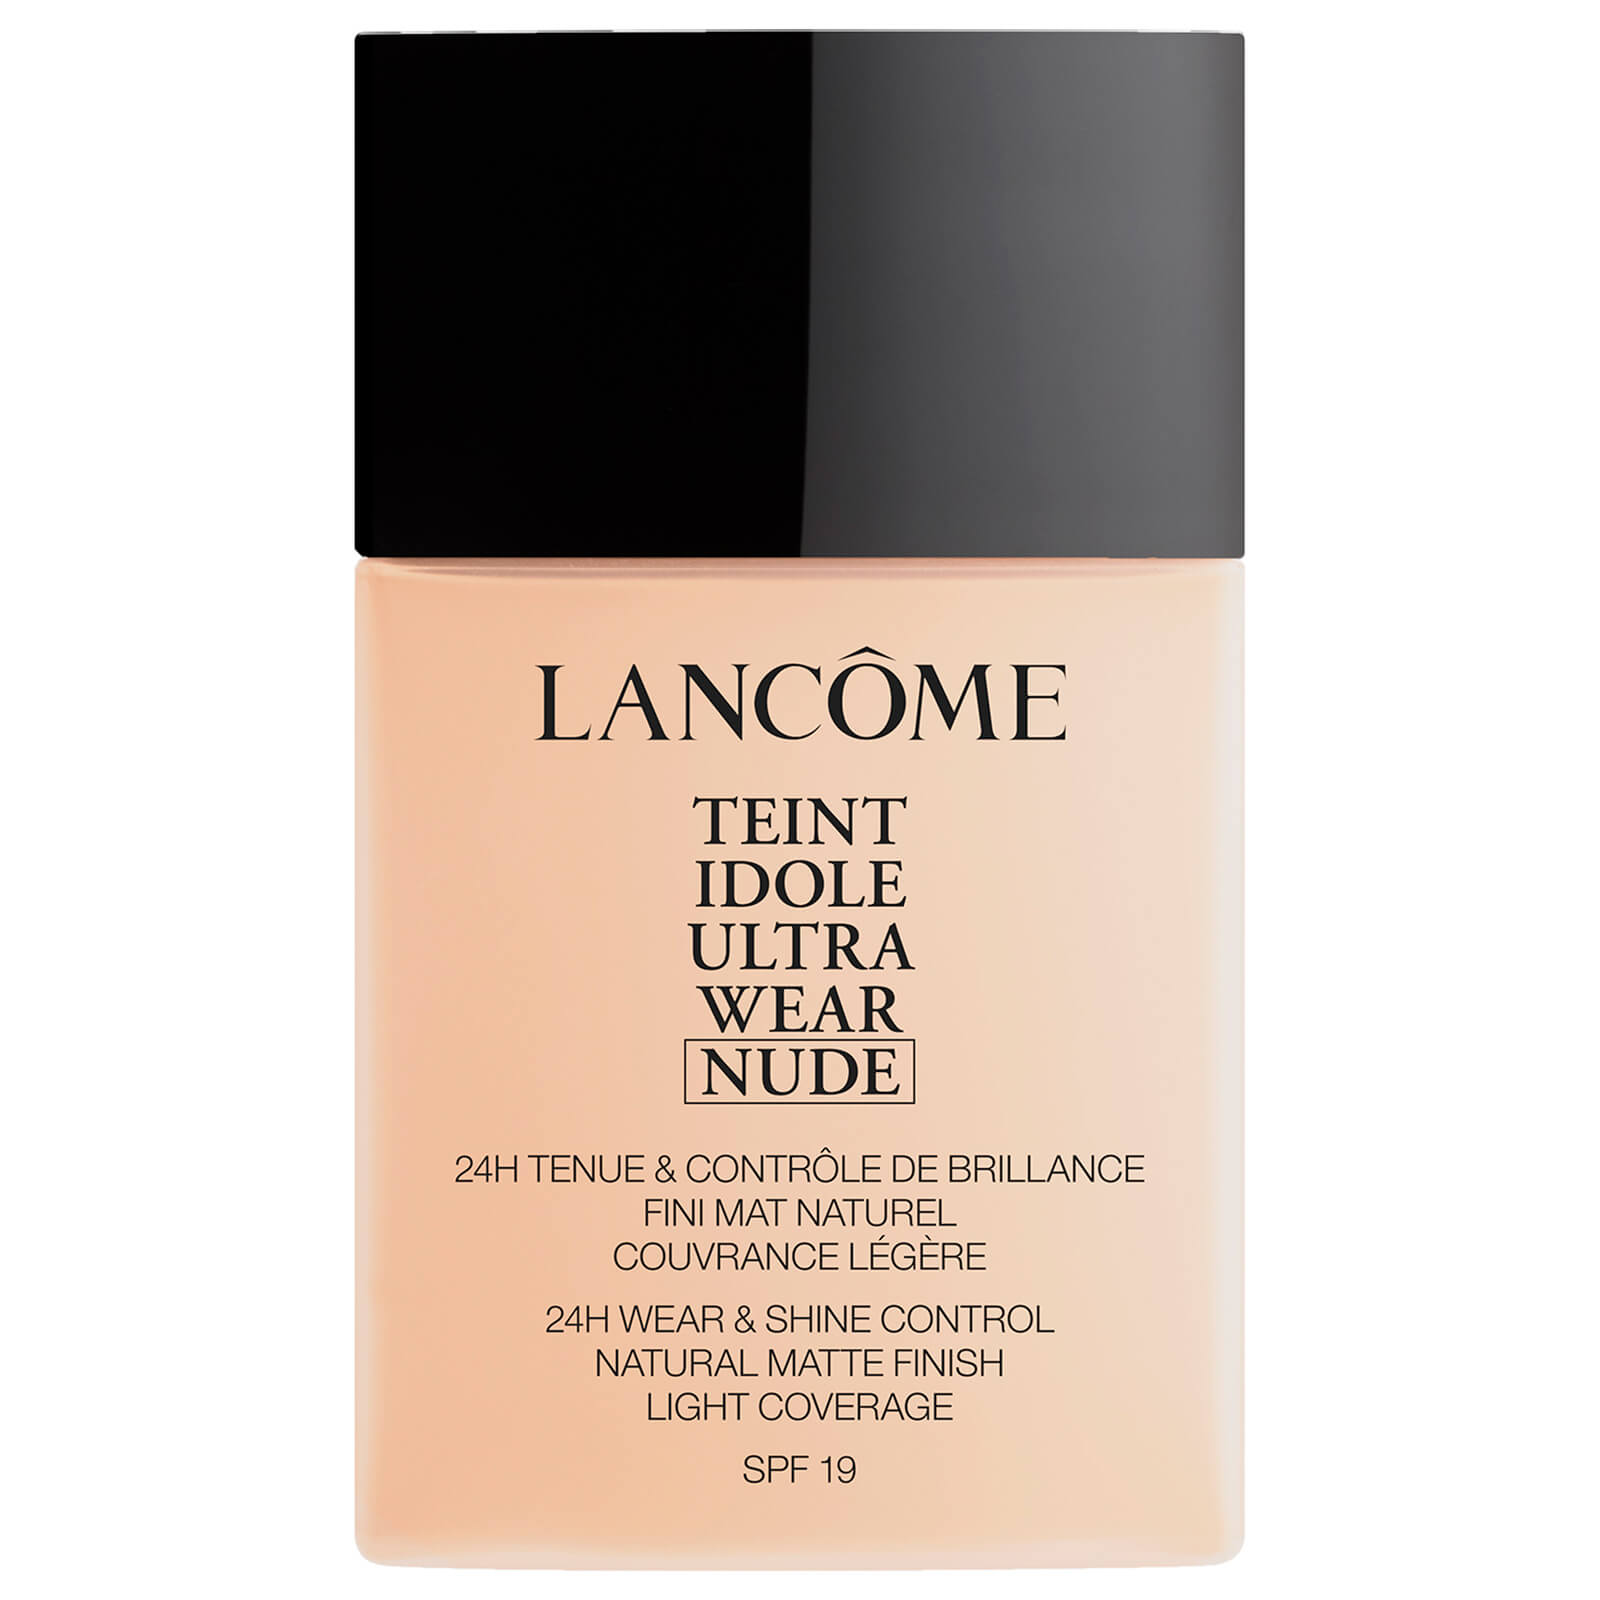 Lancôme Teint Idole Ultra Wear Nude Foundation 40ml Various Shades